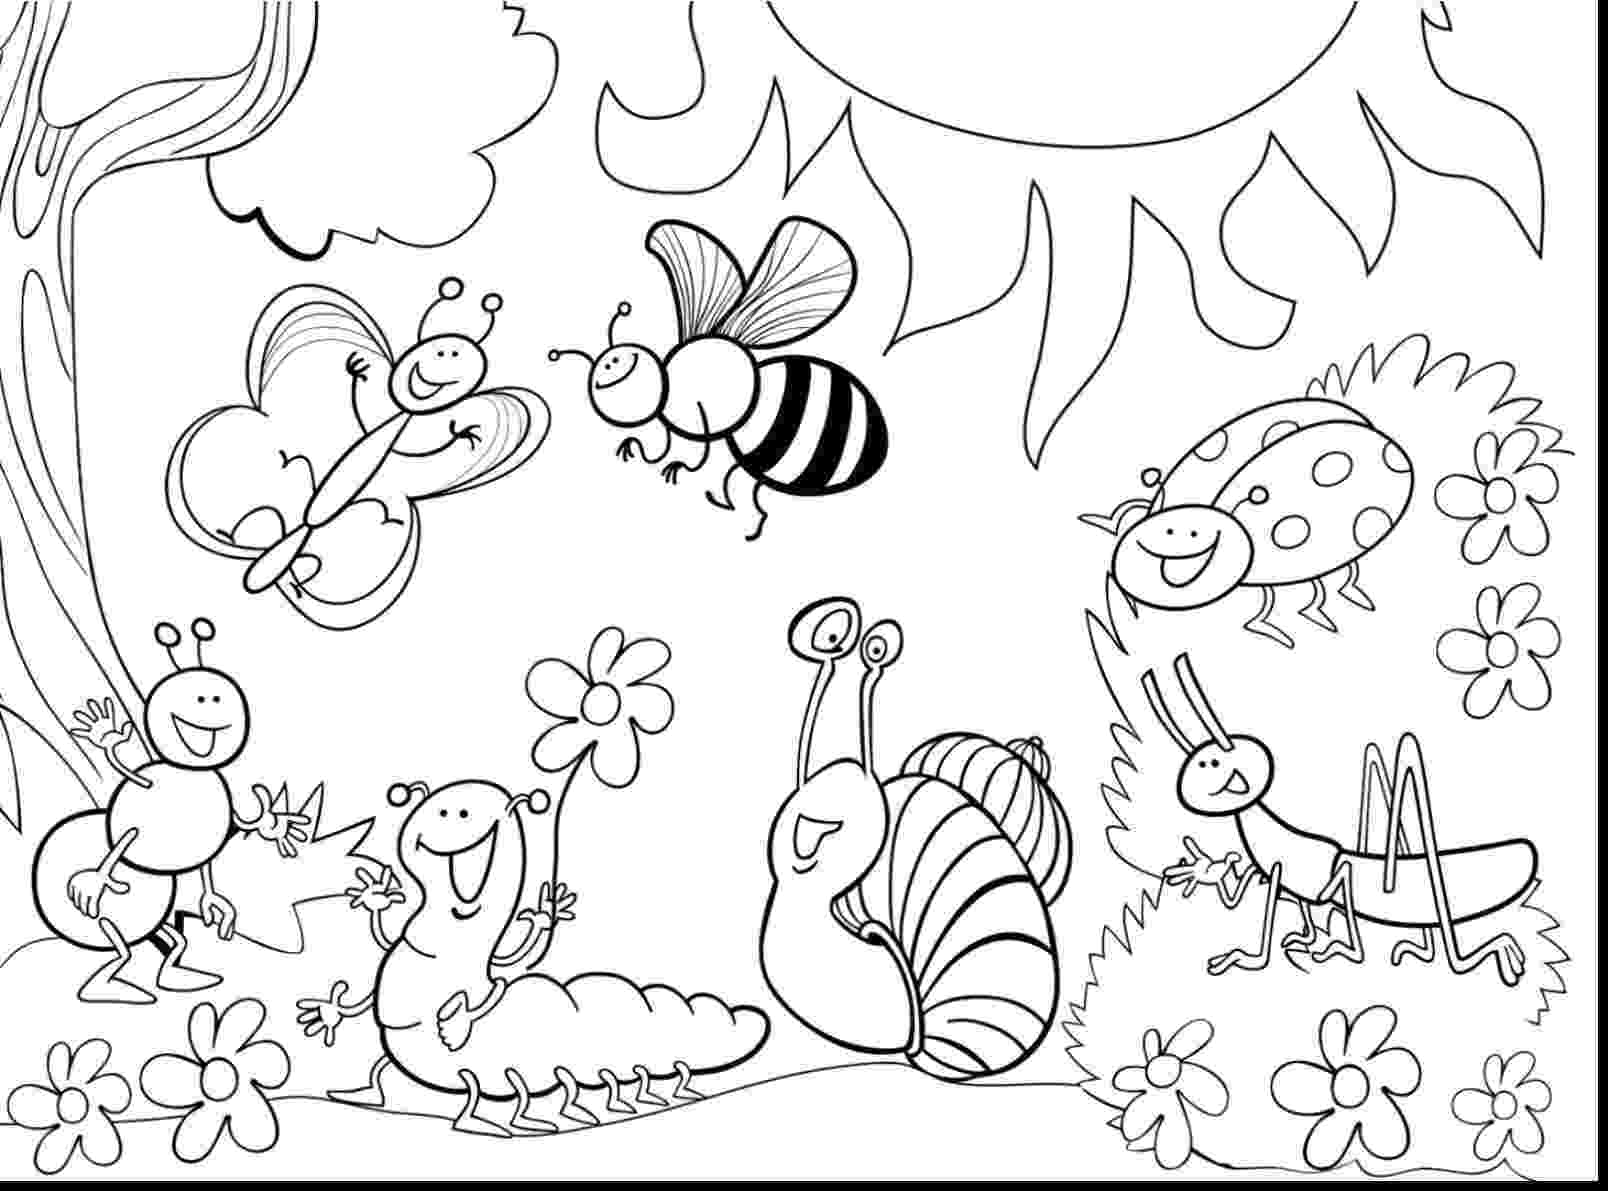 insect colouring page bug coloring pages bugs print new school ideas garden page colouring insect